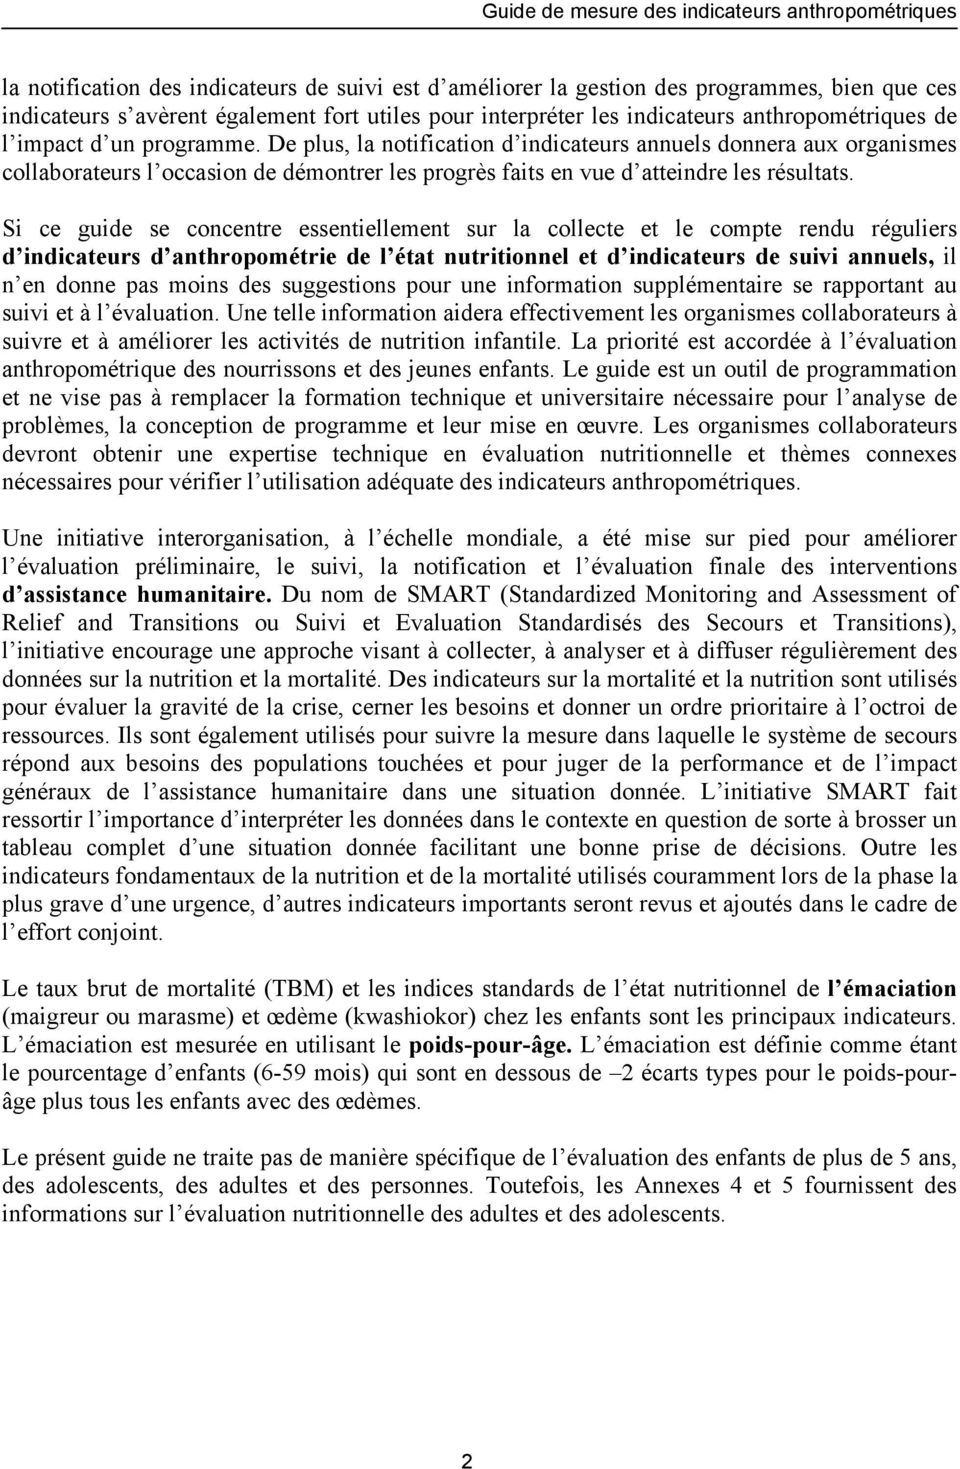 Si ce guide se concentre essentiellement sur la collecte et le compte rendu réguliers d indicateurs d anthropométrie de l état nutritionnel et d indicateurs de suivi annuels, il n en donne pas moins